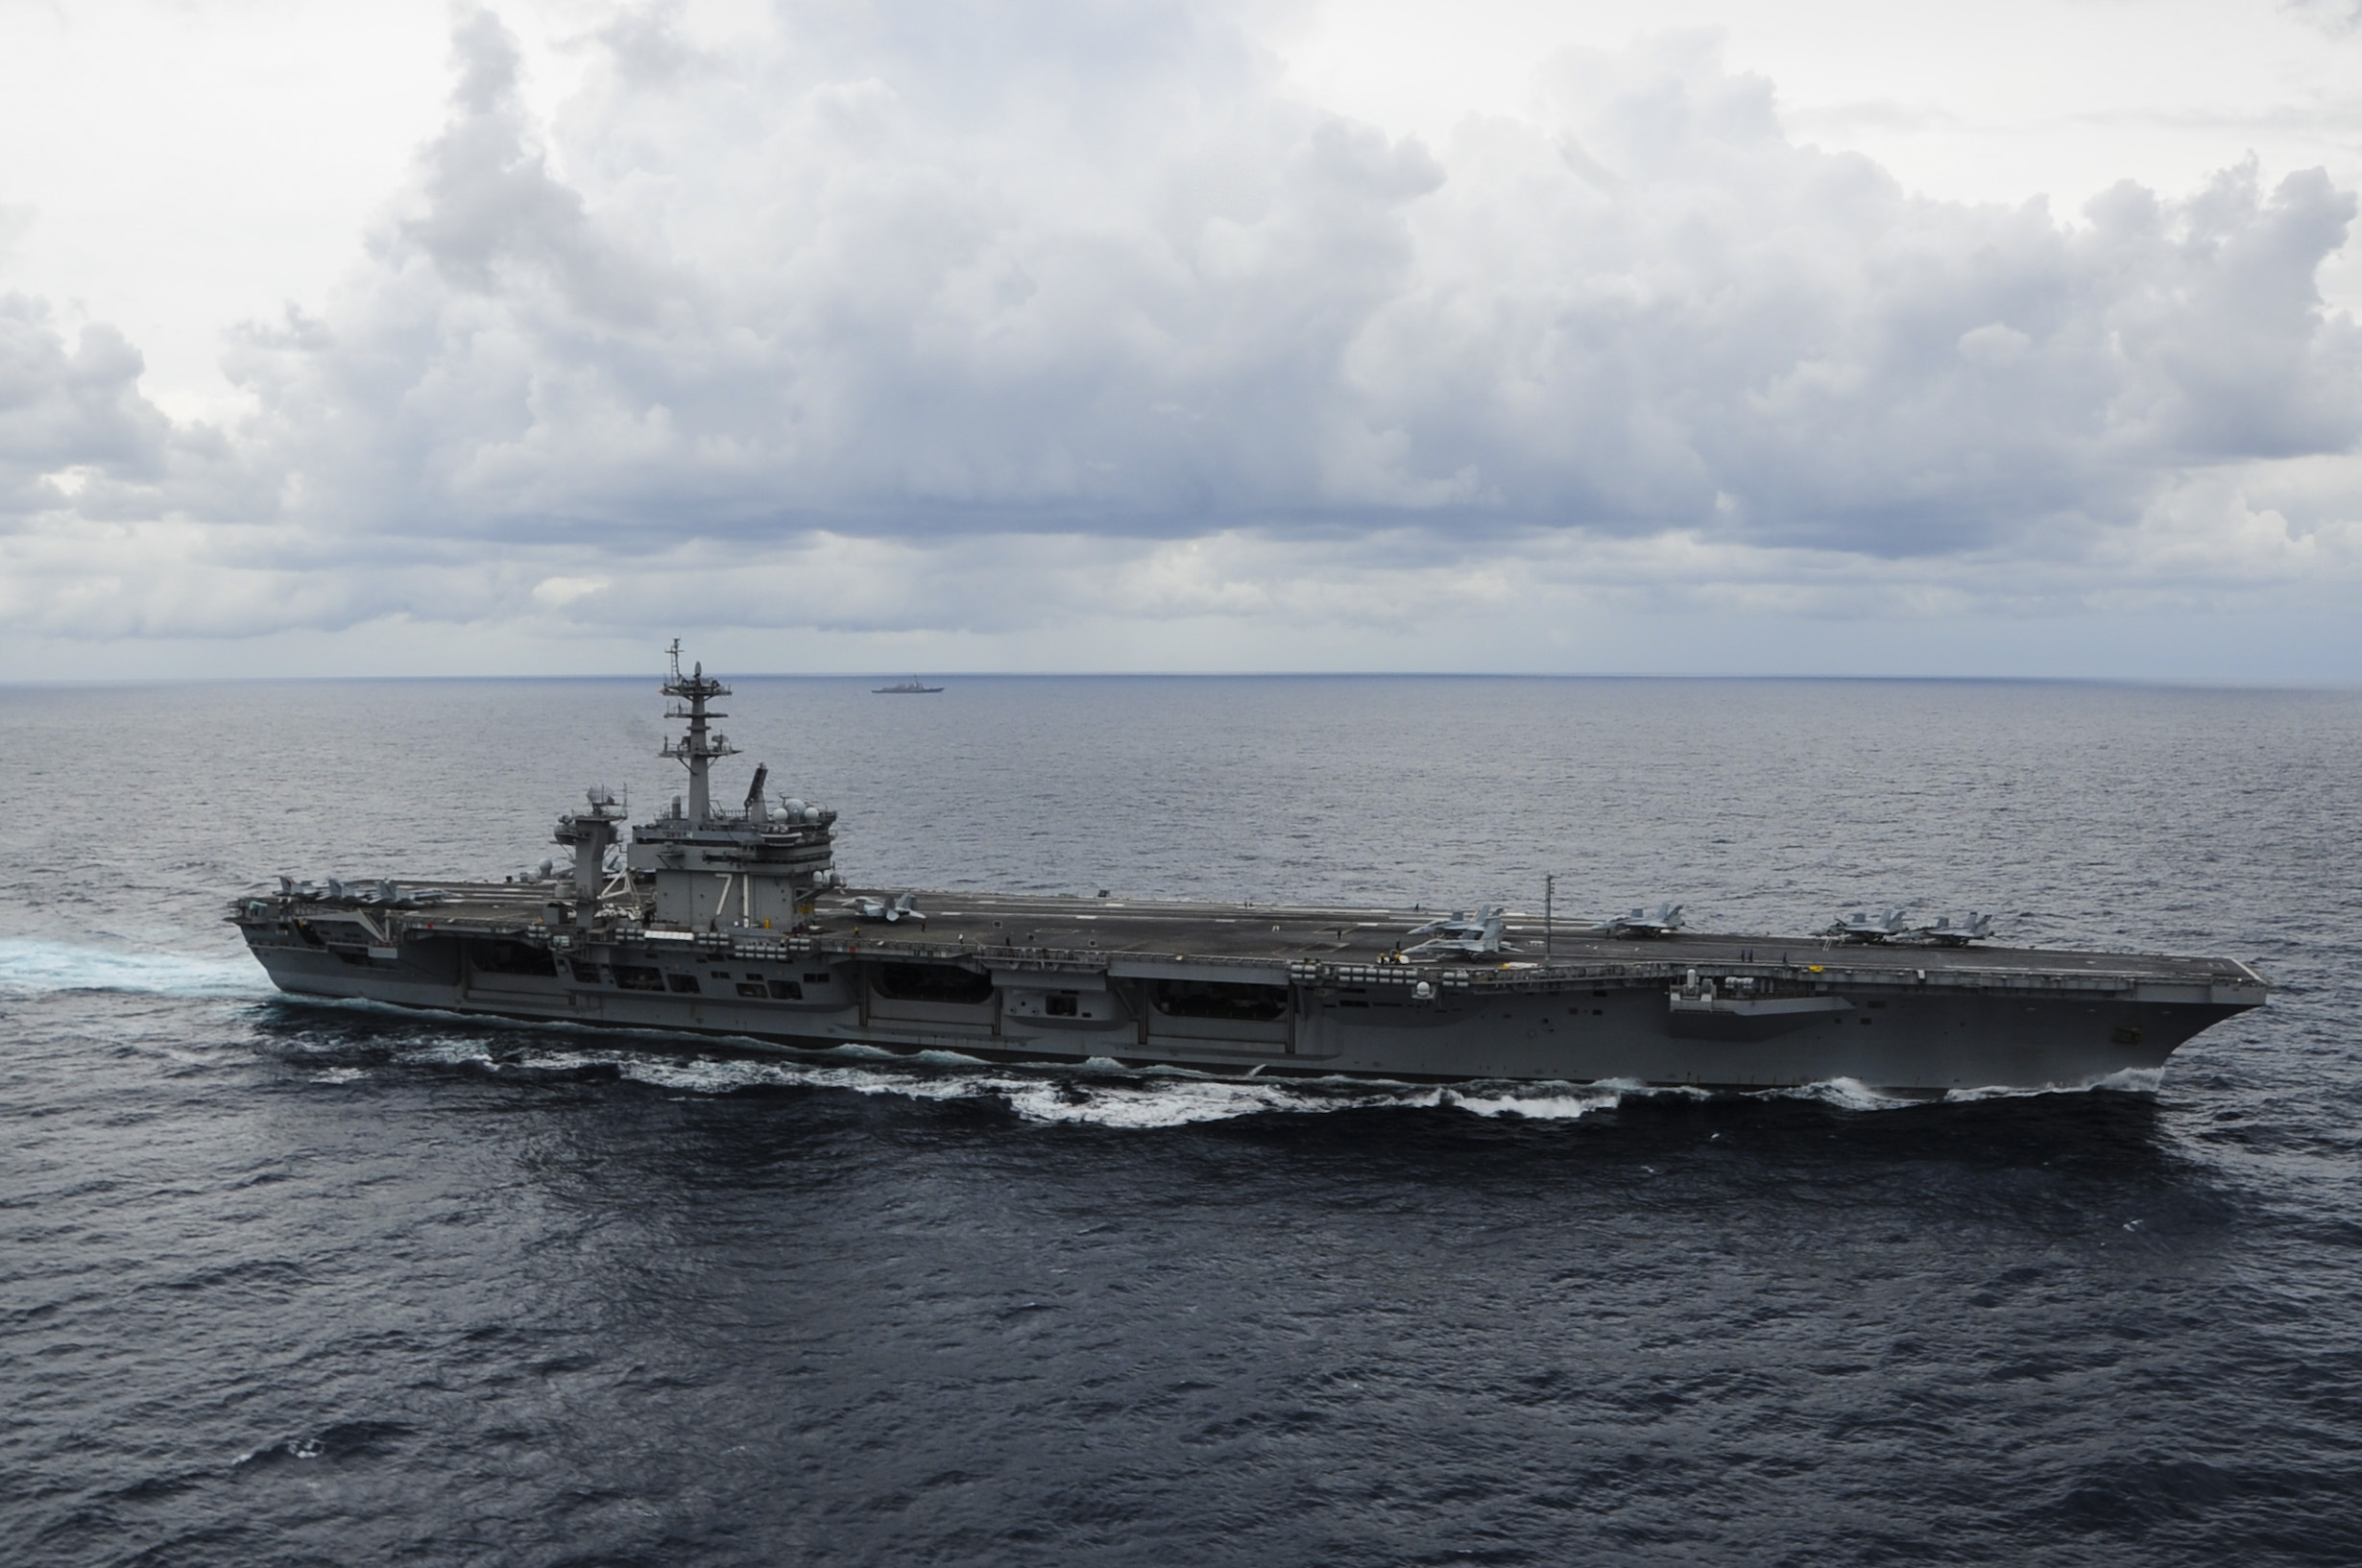 USS Theodore Roosevelt (CVN 71) transits in a strait transit formation with ships from Carrier Strike Group 12 on Sept. 20, 2014.